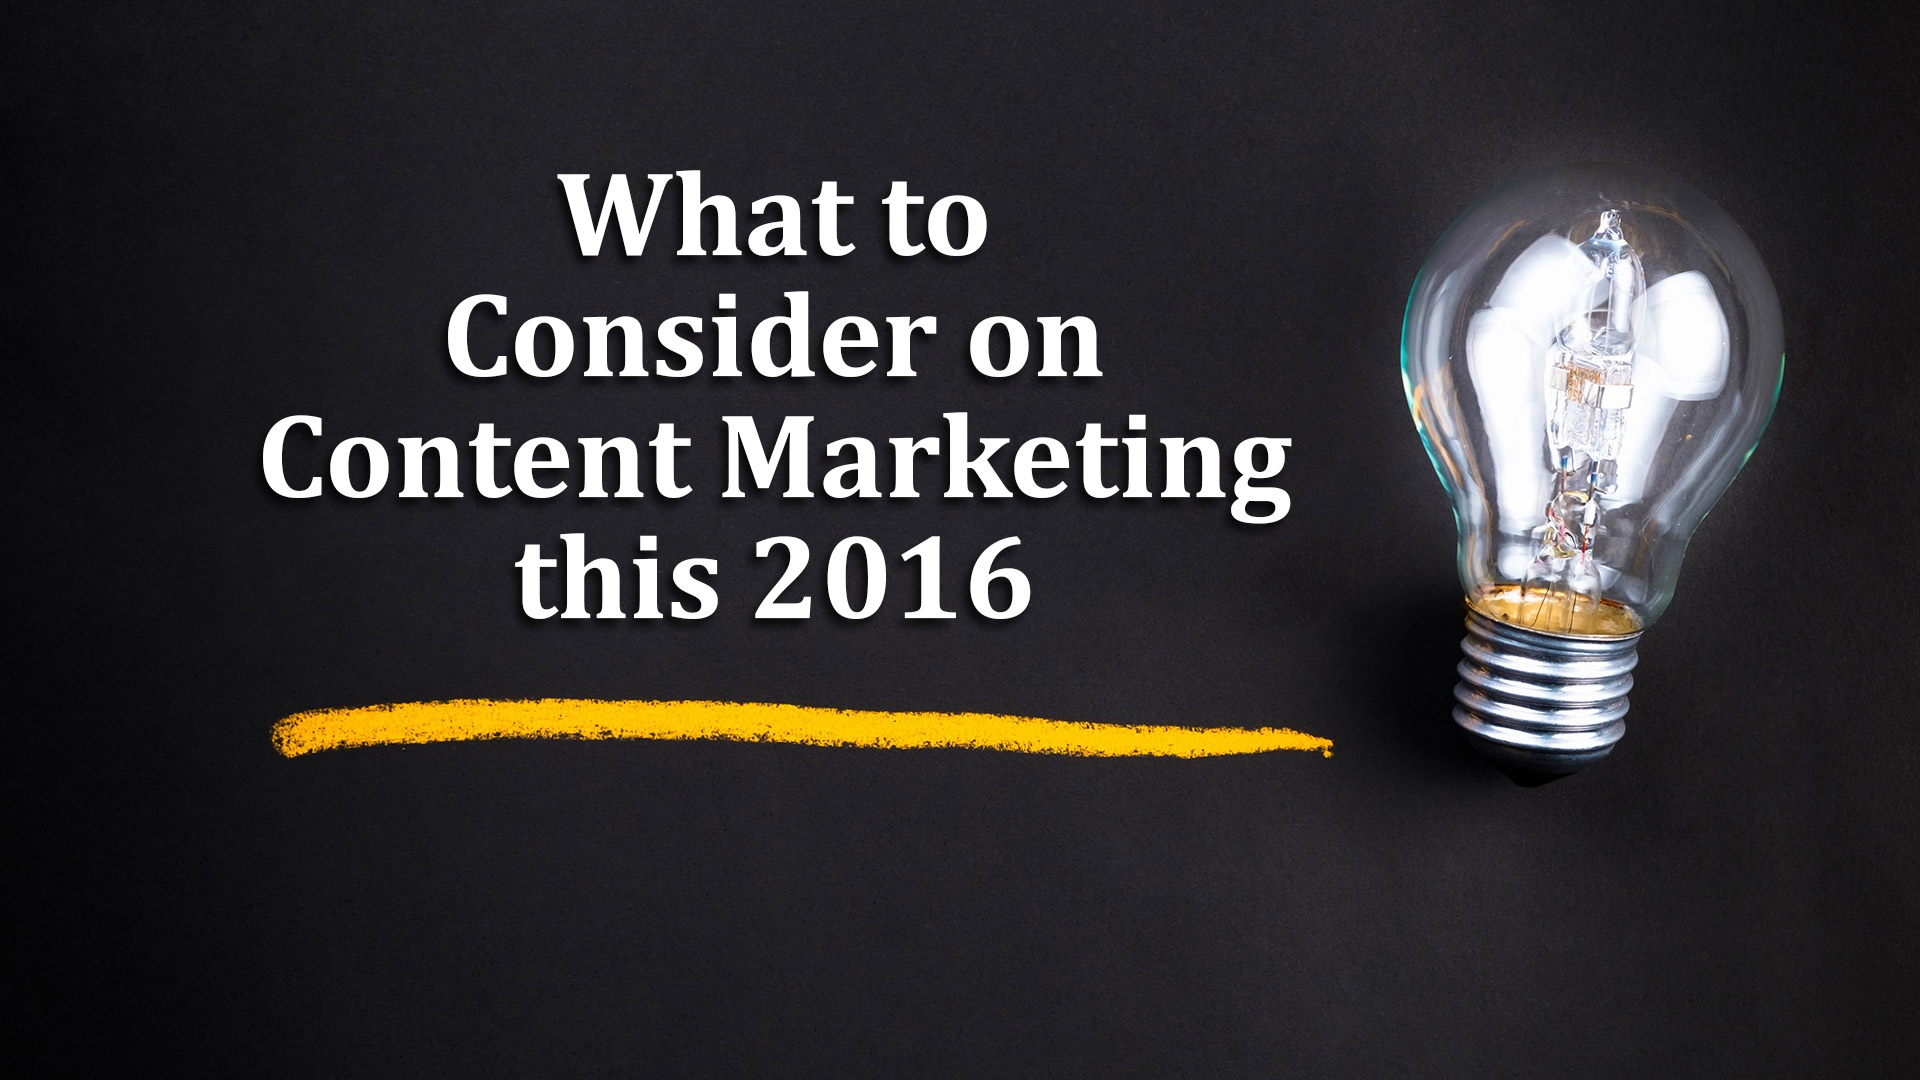 What to Consider on Content Marketing this 2016